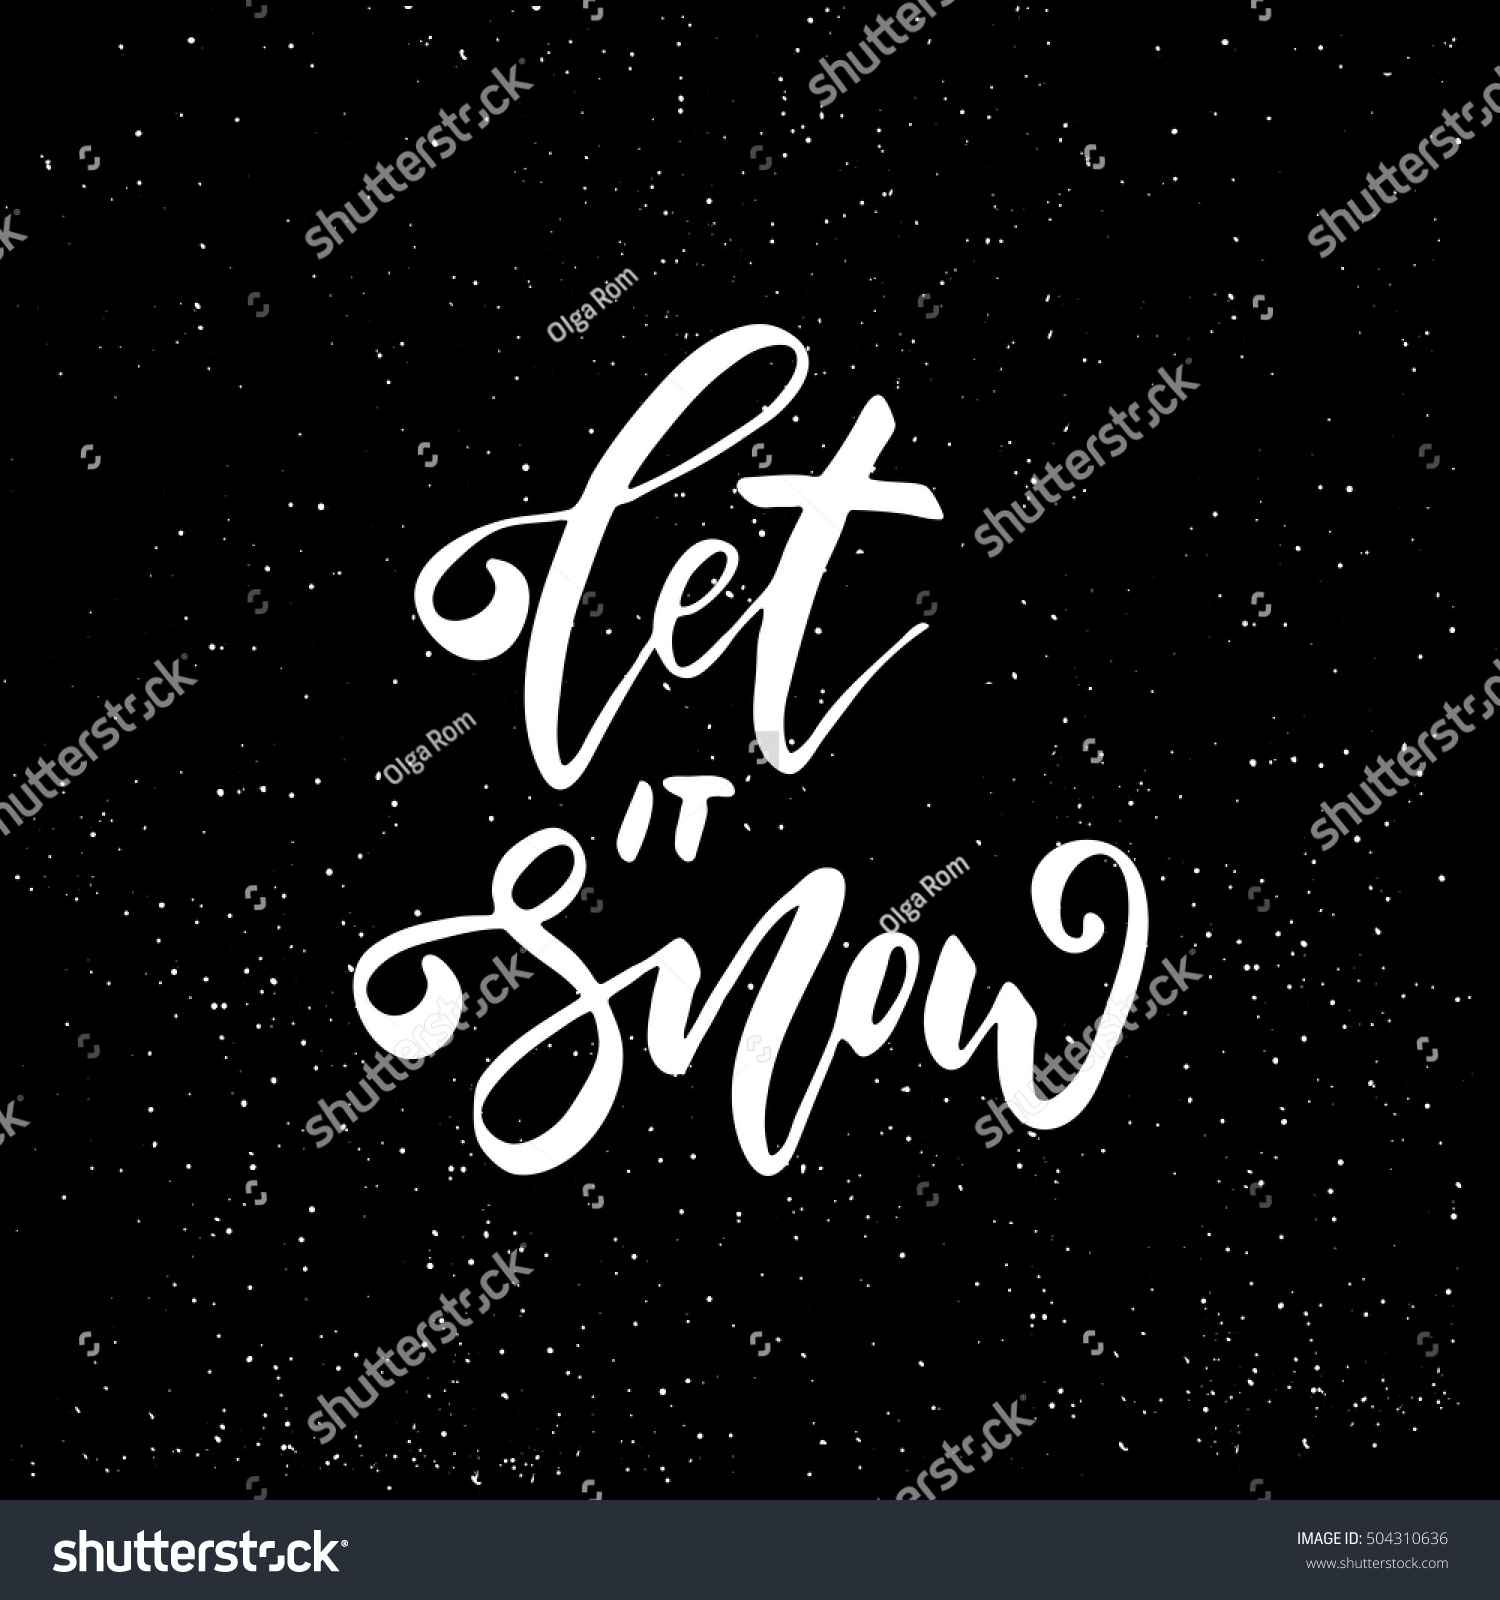 Let It Snow Freehand Ink Hand Drawn Calligraphic Design For Xmas